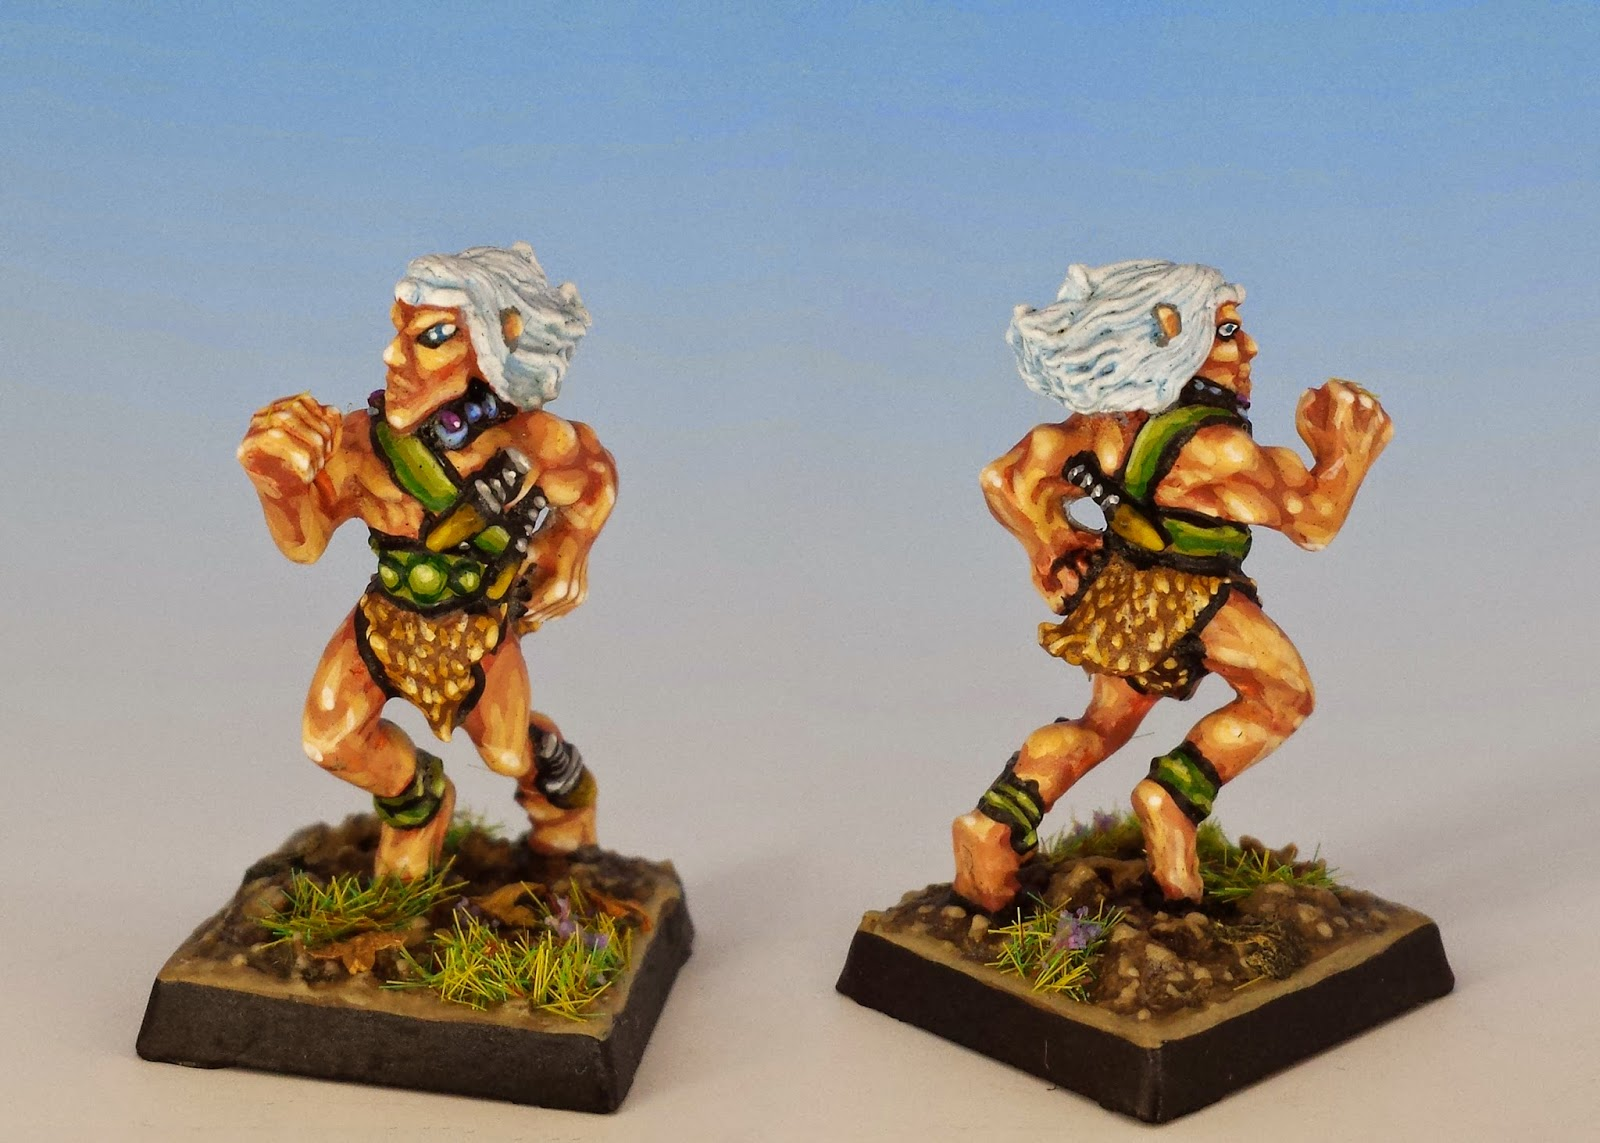 Palu Wildcat Keeper, Citadel Miniatures (1987, sculpted by Jes Goodwin, painted by M. Sullivan)